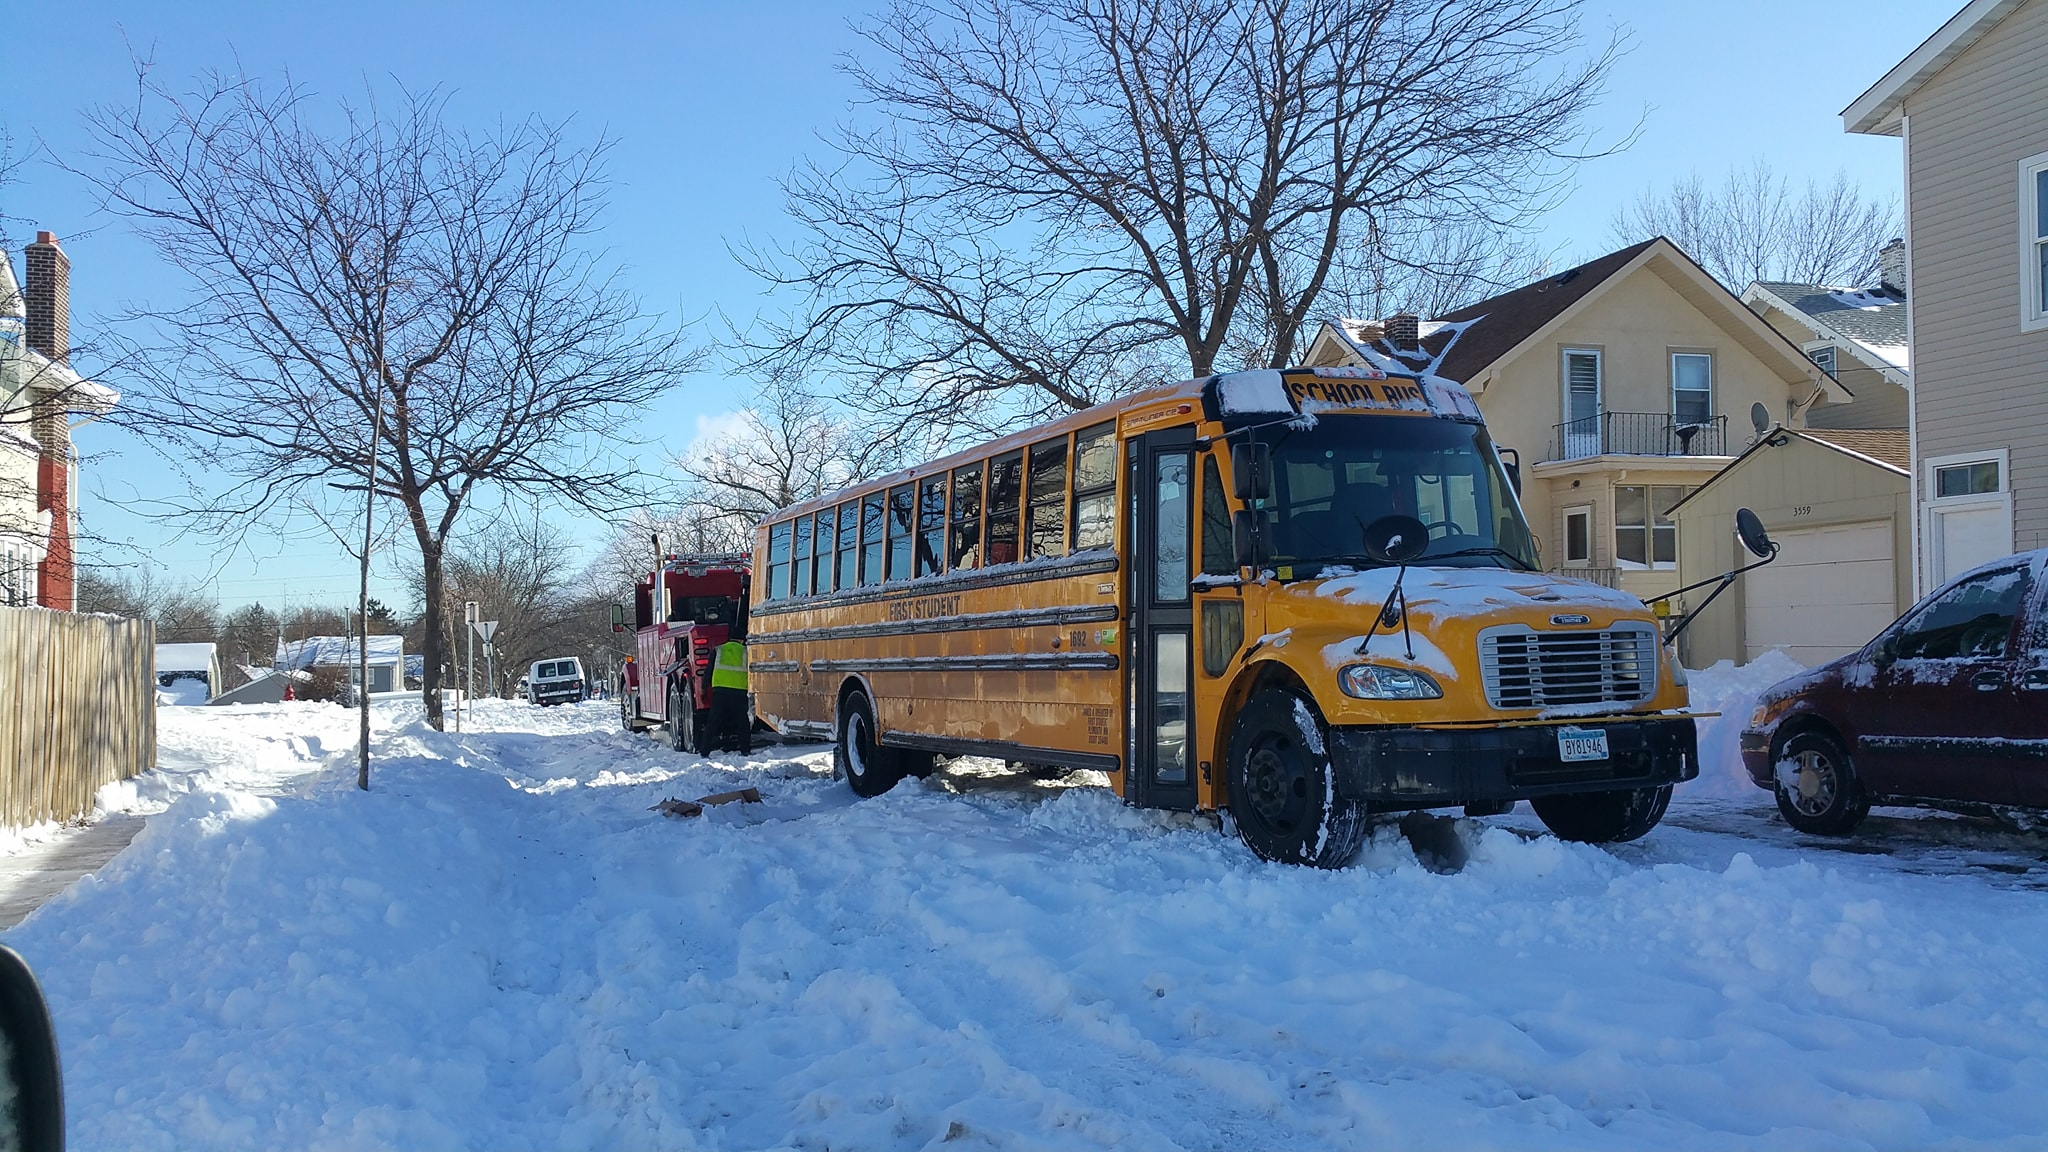 A school bus was reportedly stuck in the snow overnight on 36th and Fremont Ave. N.  Photo by Phillip Murphy